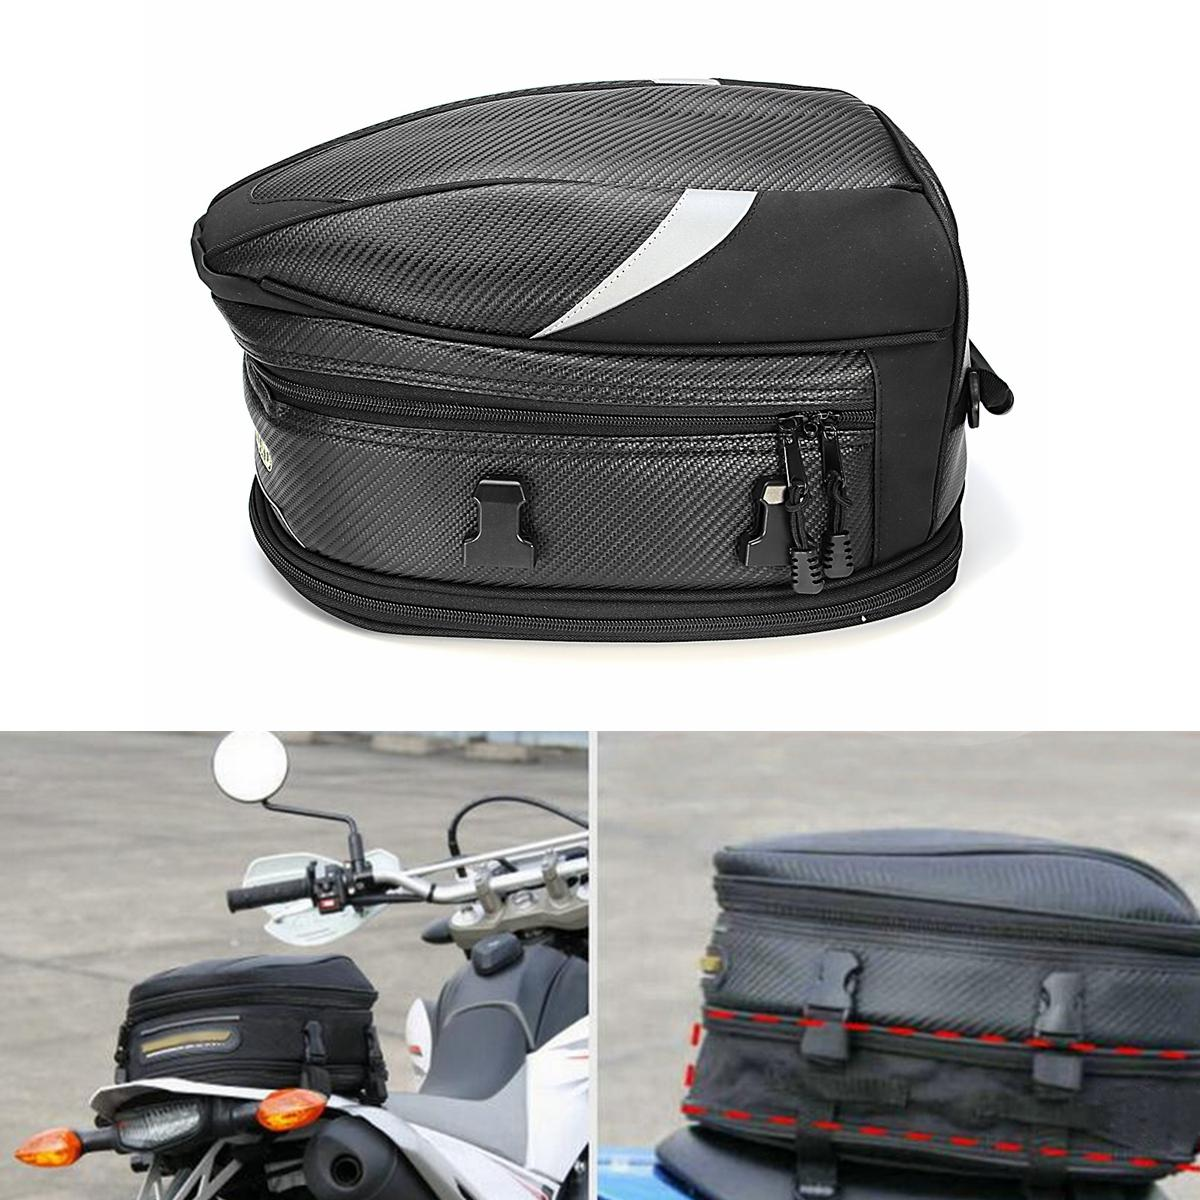 075ca9053c92 10L Motorcycle Rear Trunk Waterproof Back Seat Carry Luggage Tail Bag  Saddlebag